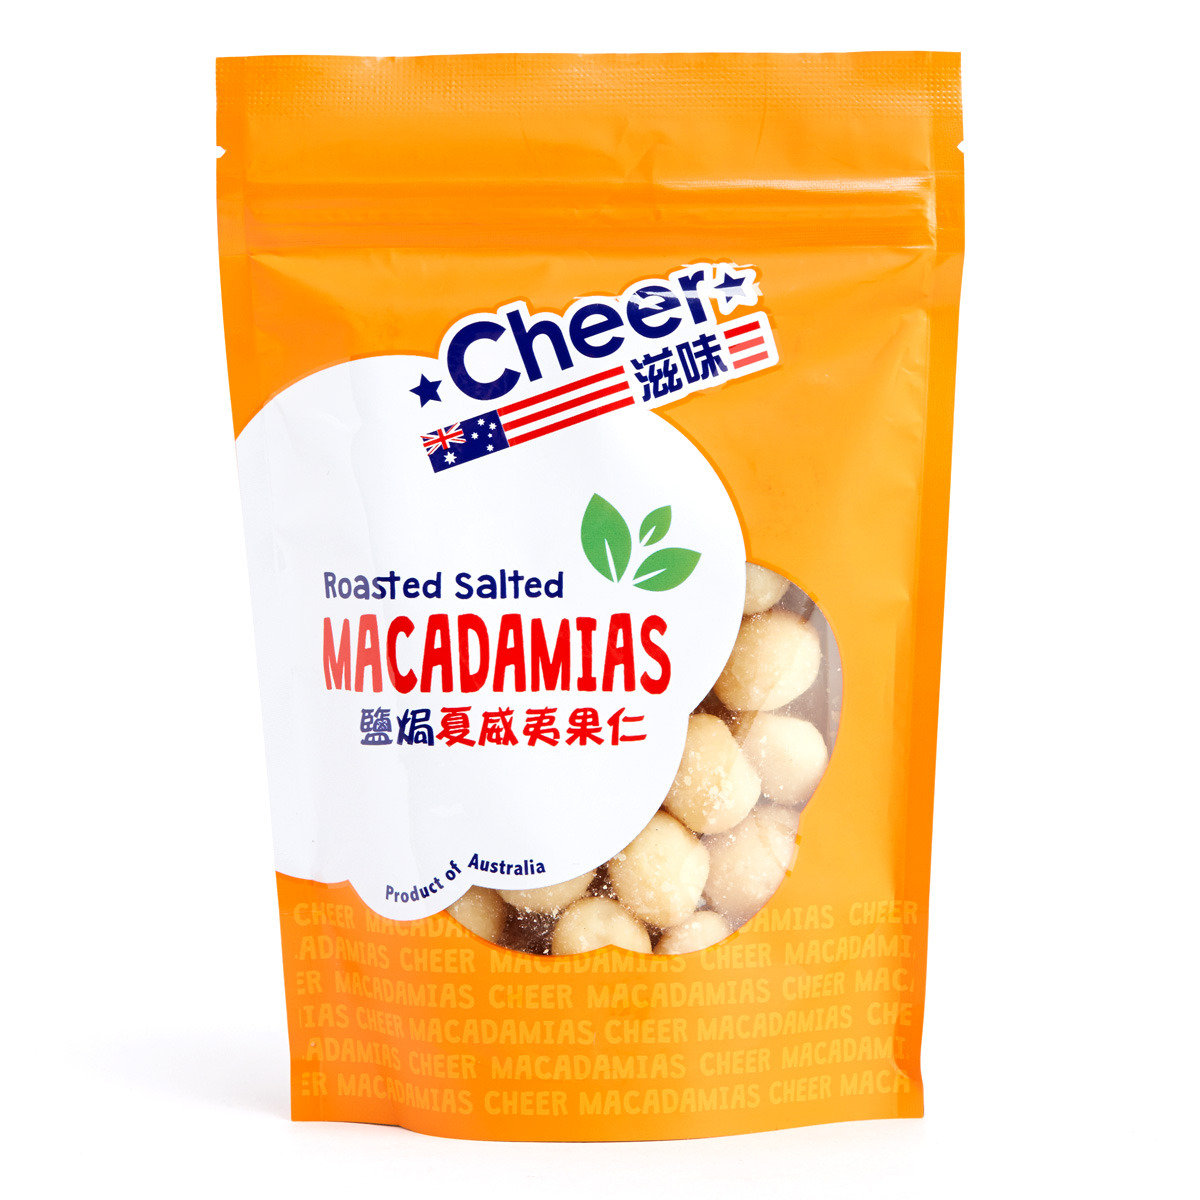 Roasted Salted Macadamias